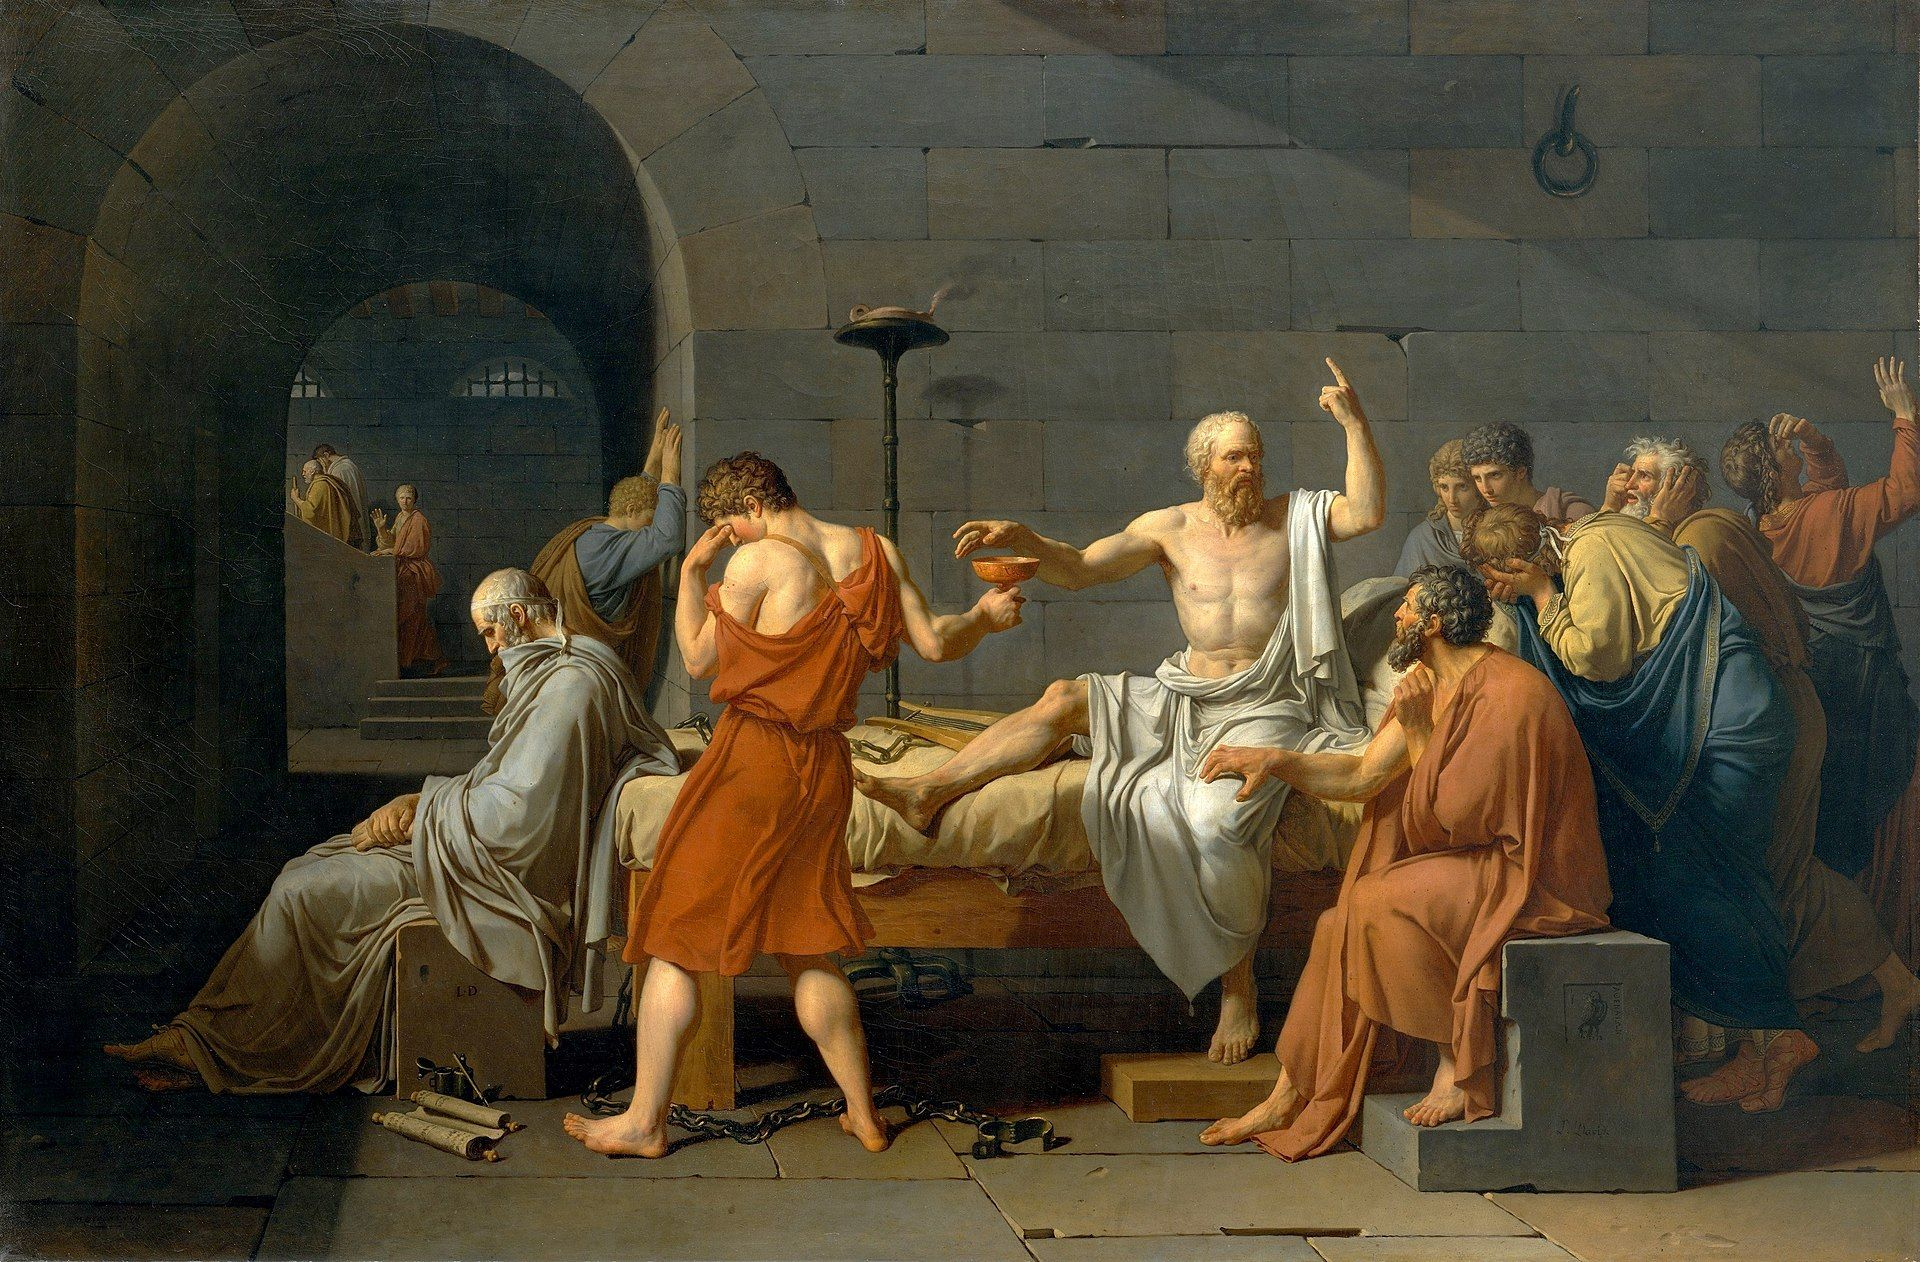 A painting of Socrates' arguing with his friends before execution.